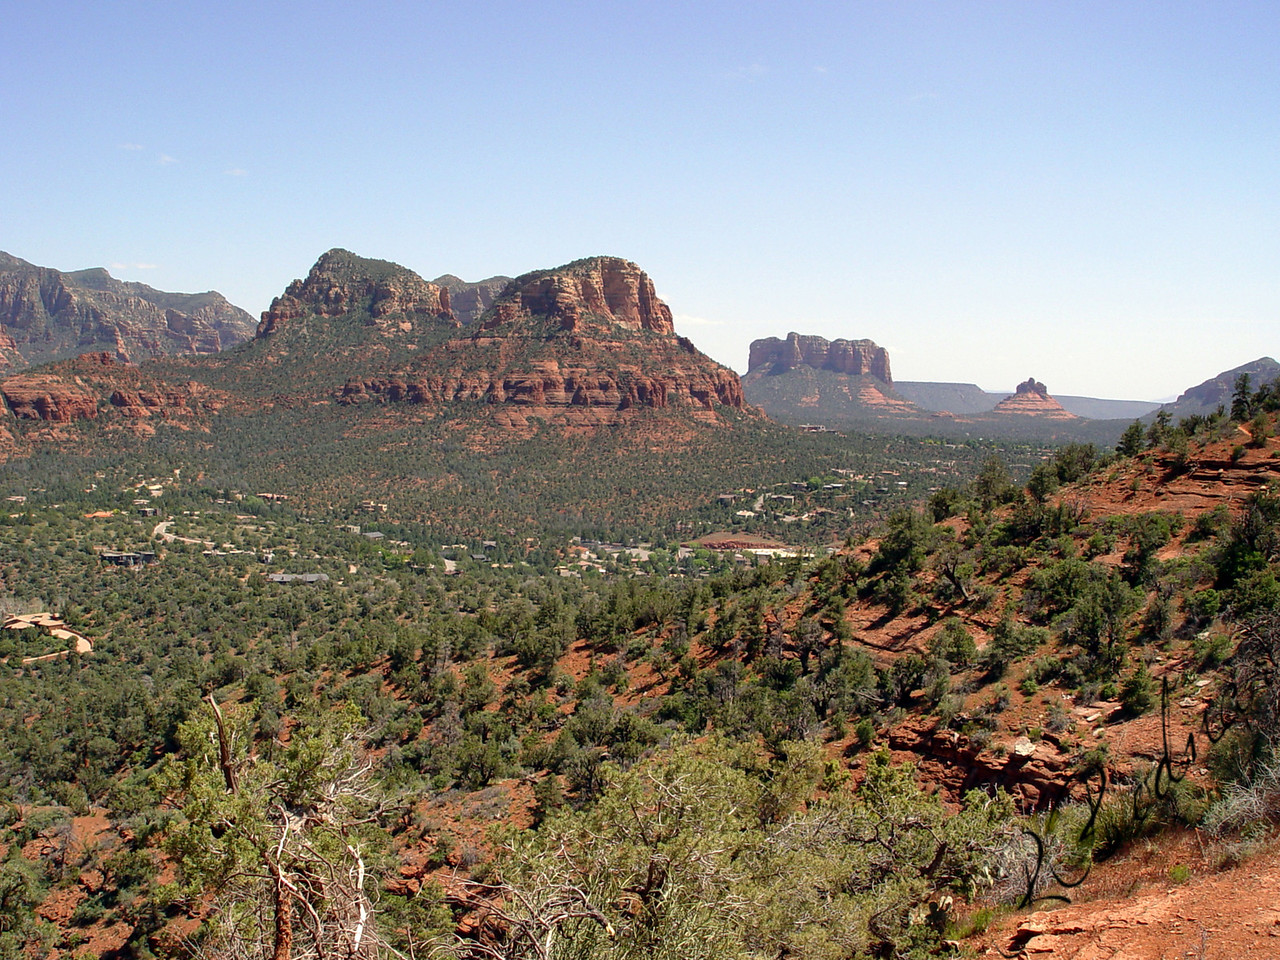 Photo By Robert Bodnar.........................................Landscape from Sedona AZ Area